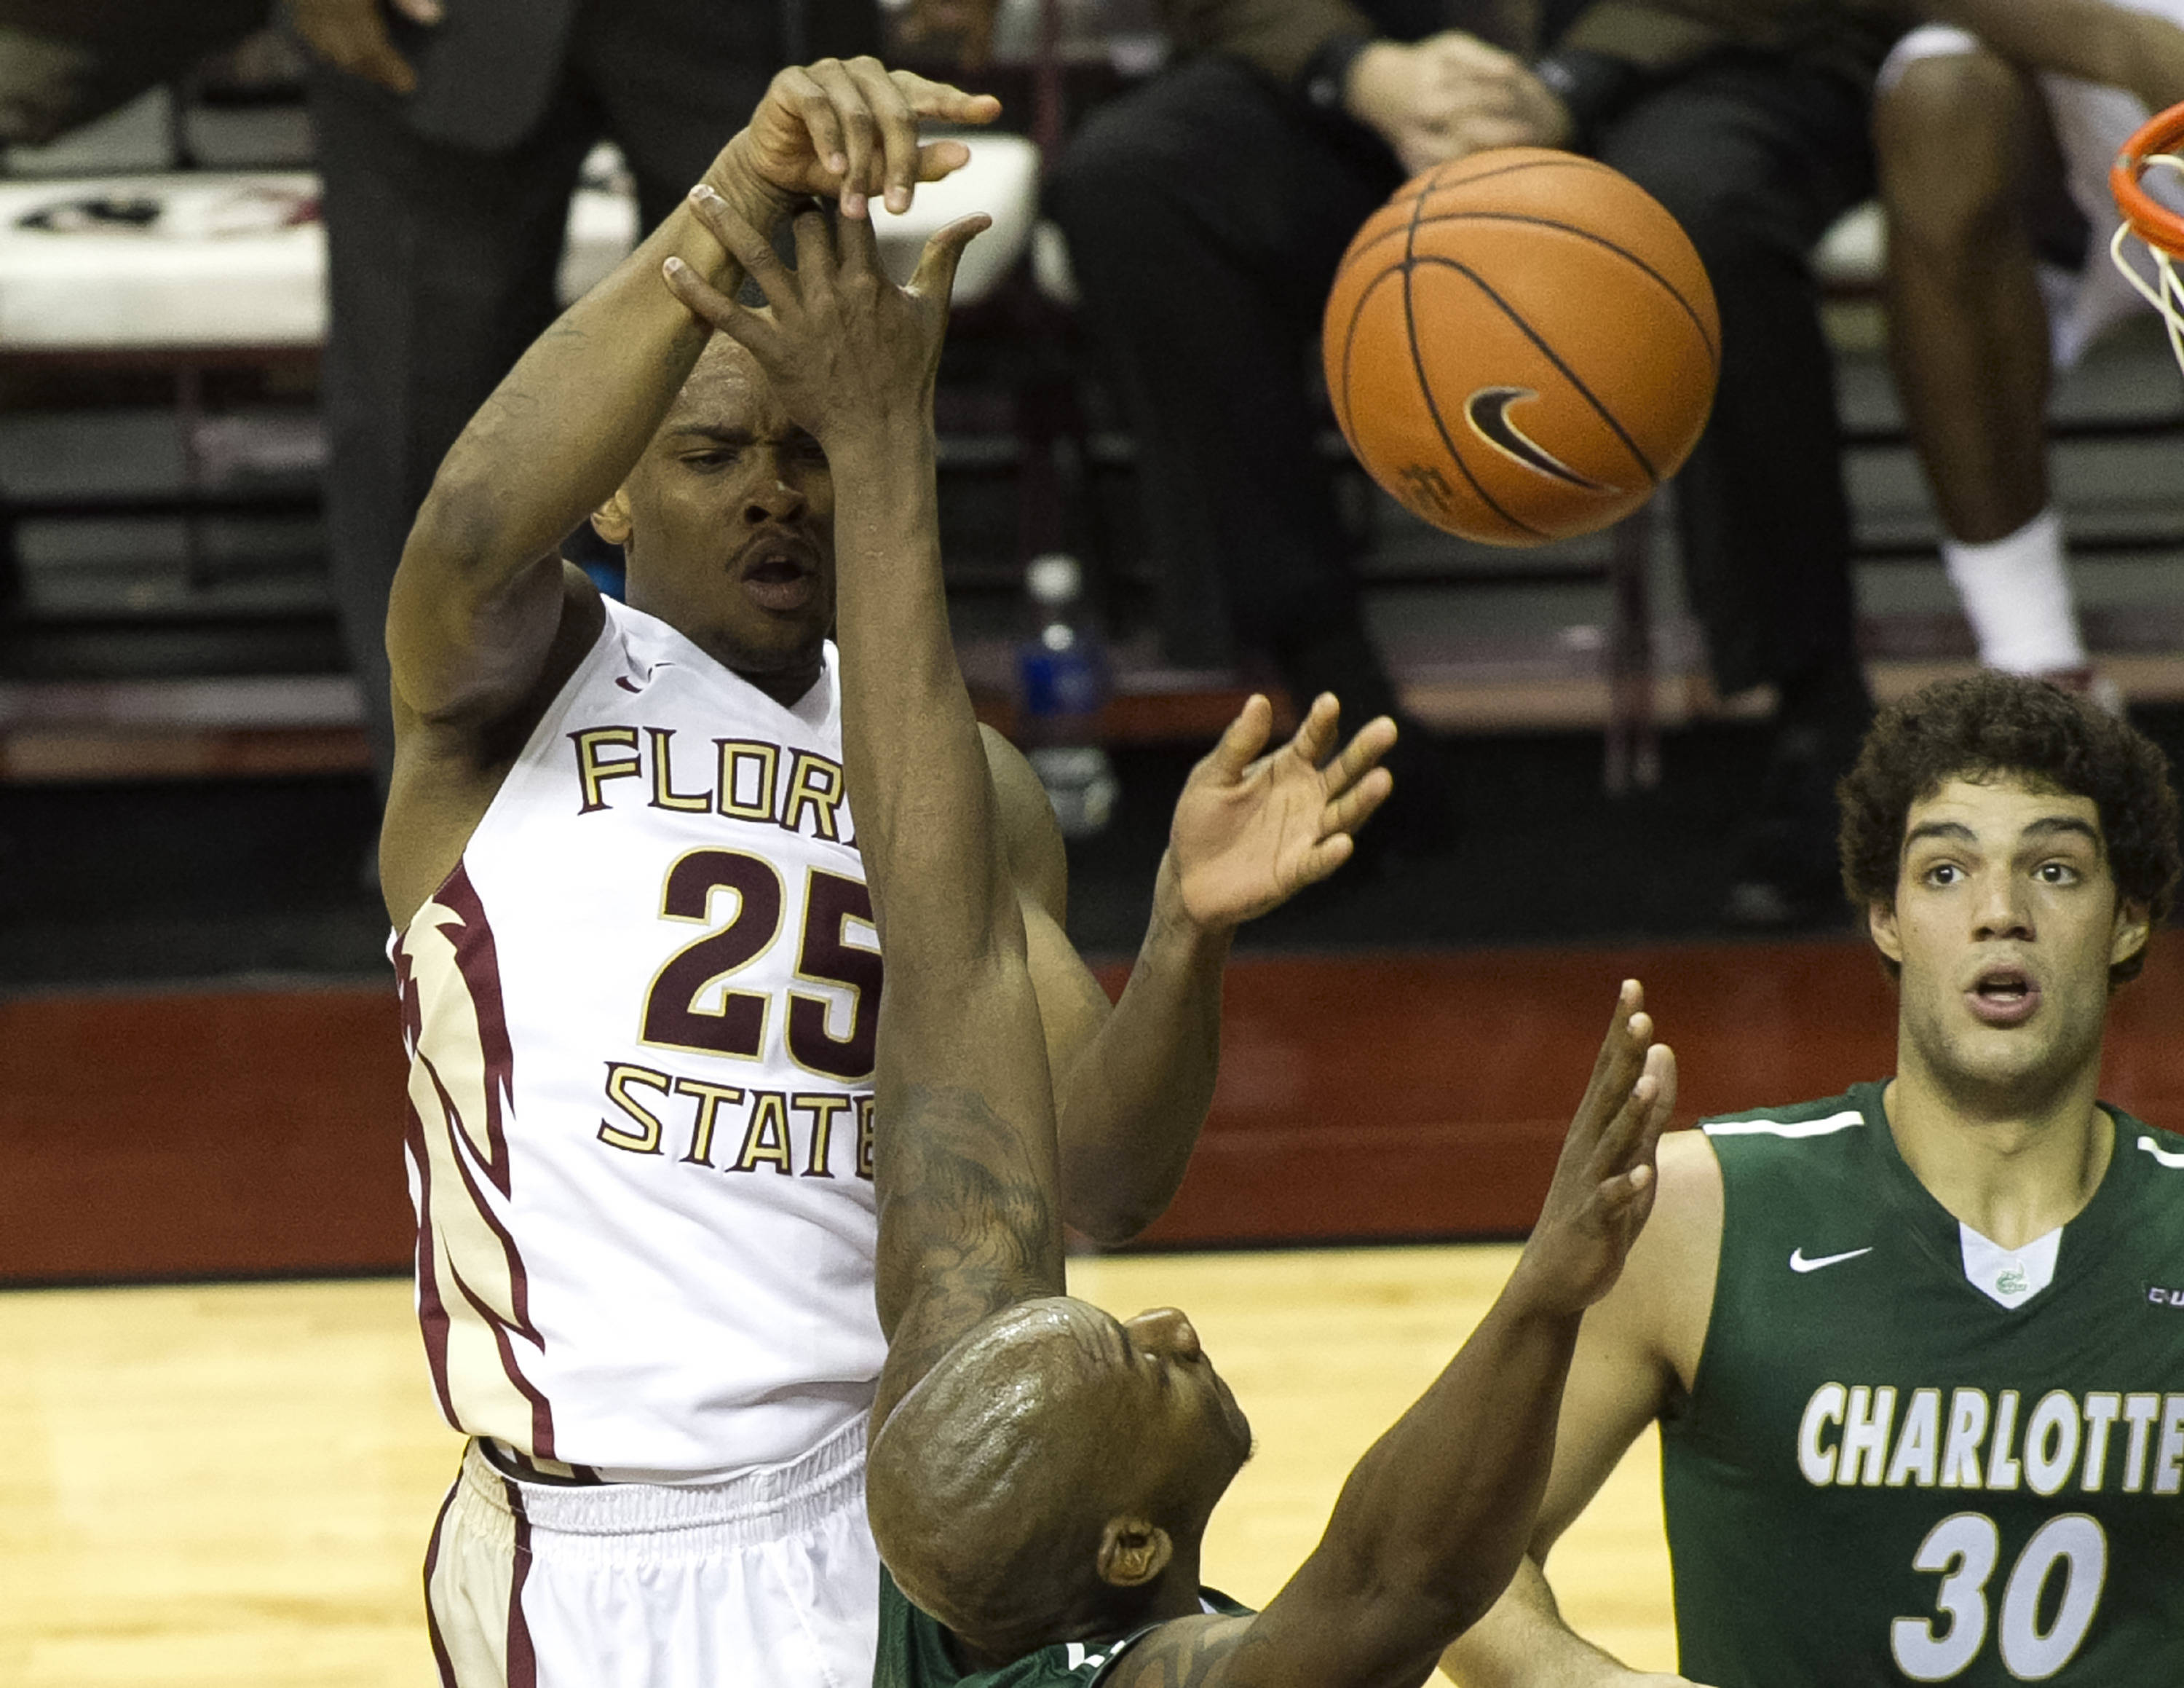 Aaron Thomas (25) with a pass and an assist, FSU vs Charlotte, 12-17-13,  (Photo by Steve Musco)